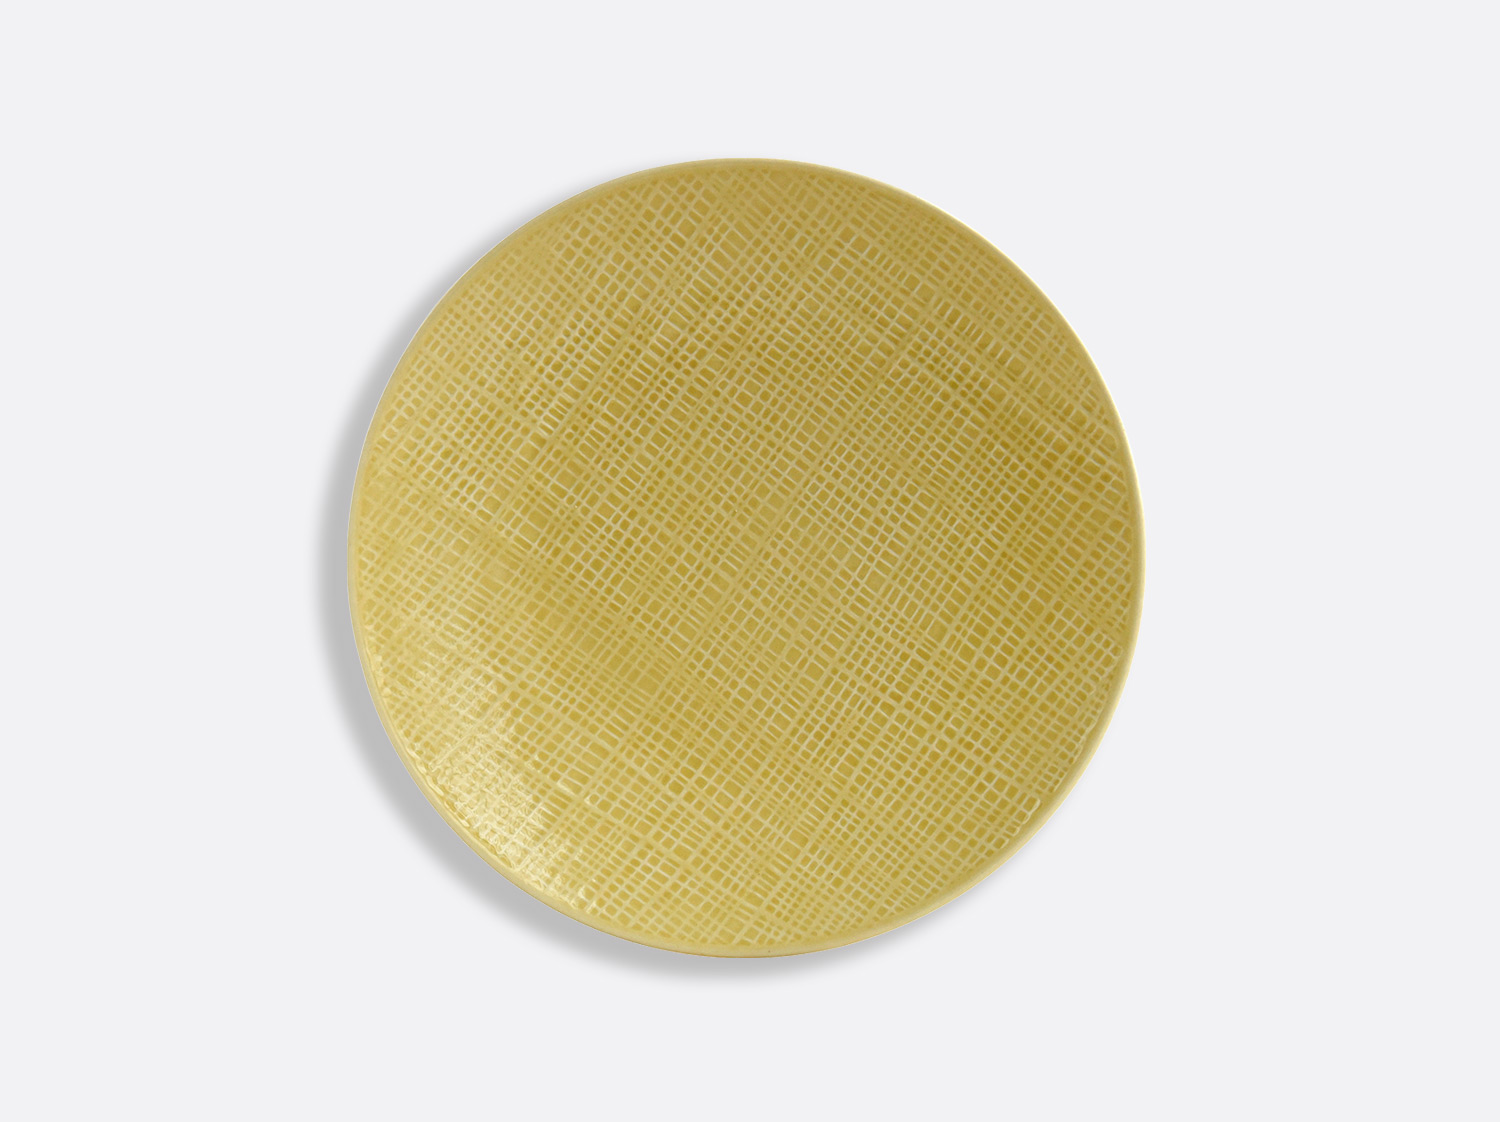 Assiette Jaune Paille 21 cm en porcelaine de la collection ORGANZA JAUNE PAILLE Bernardaud